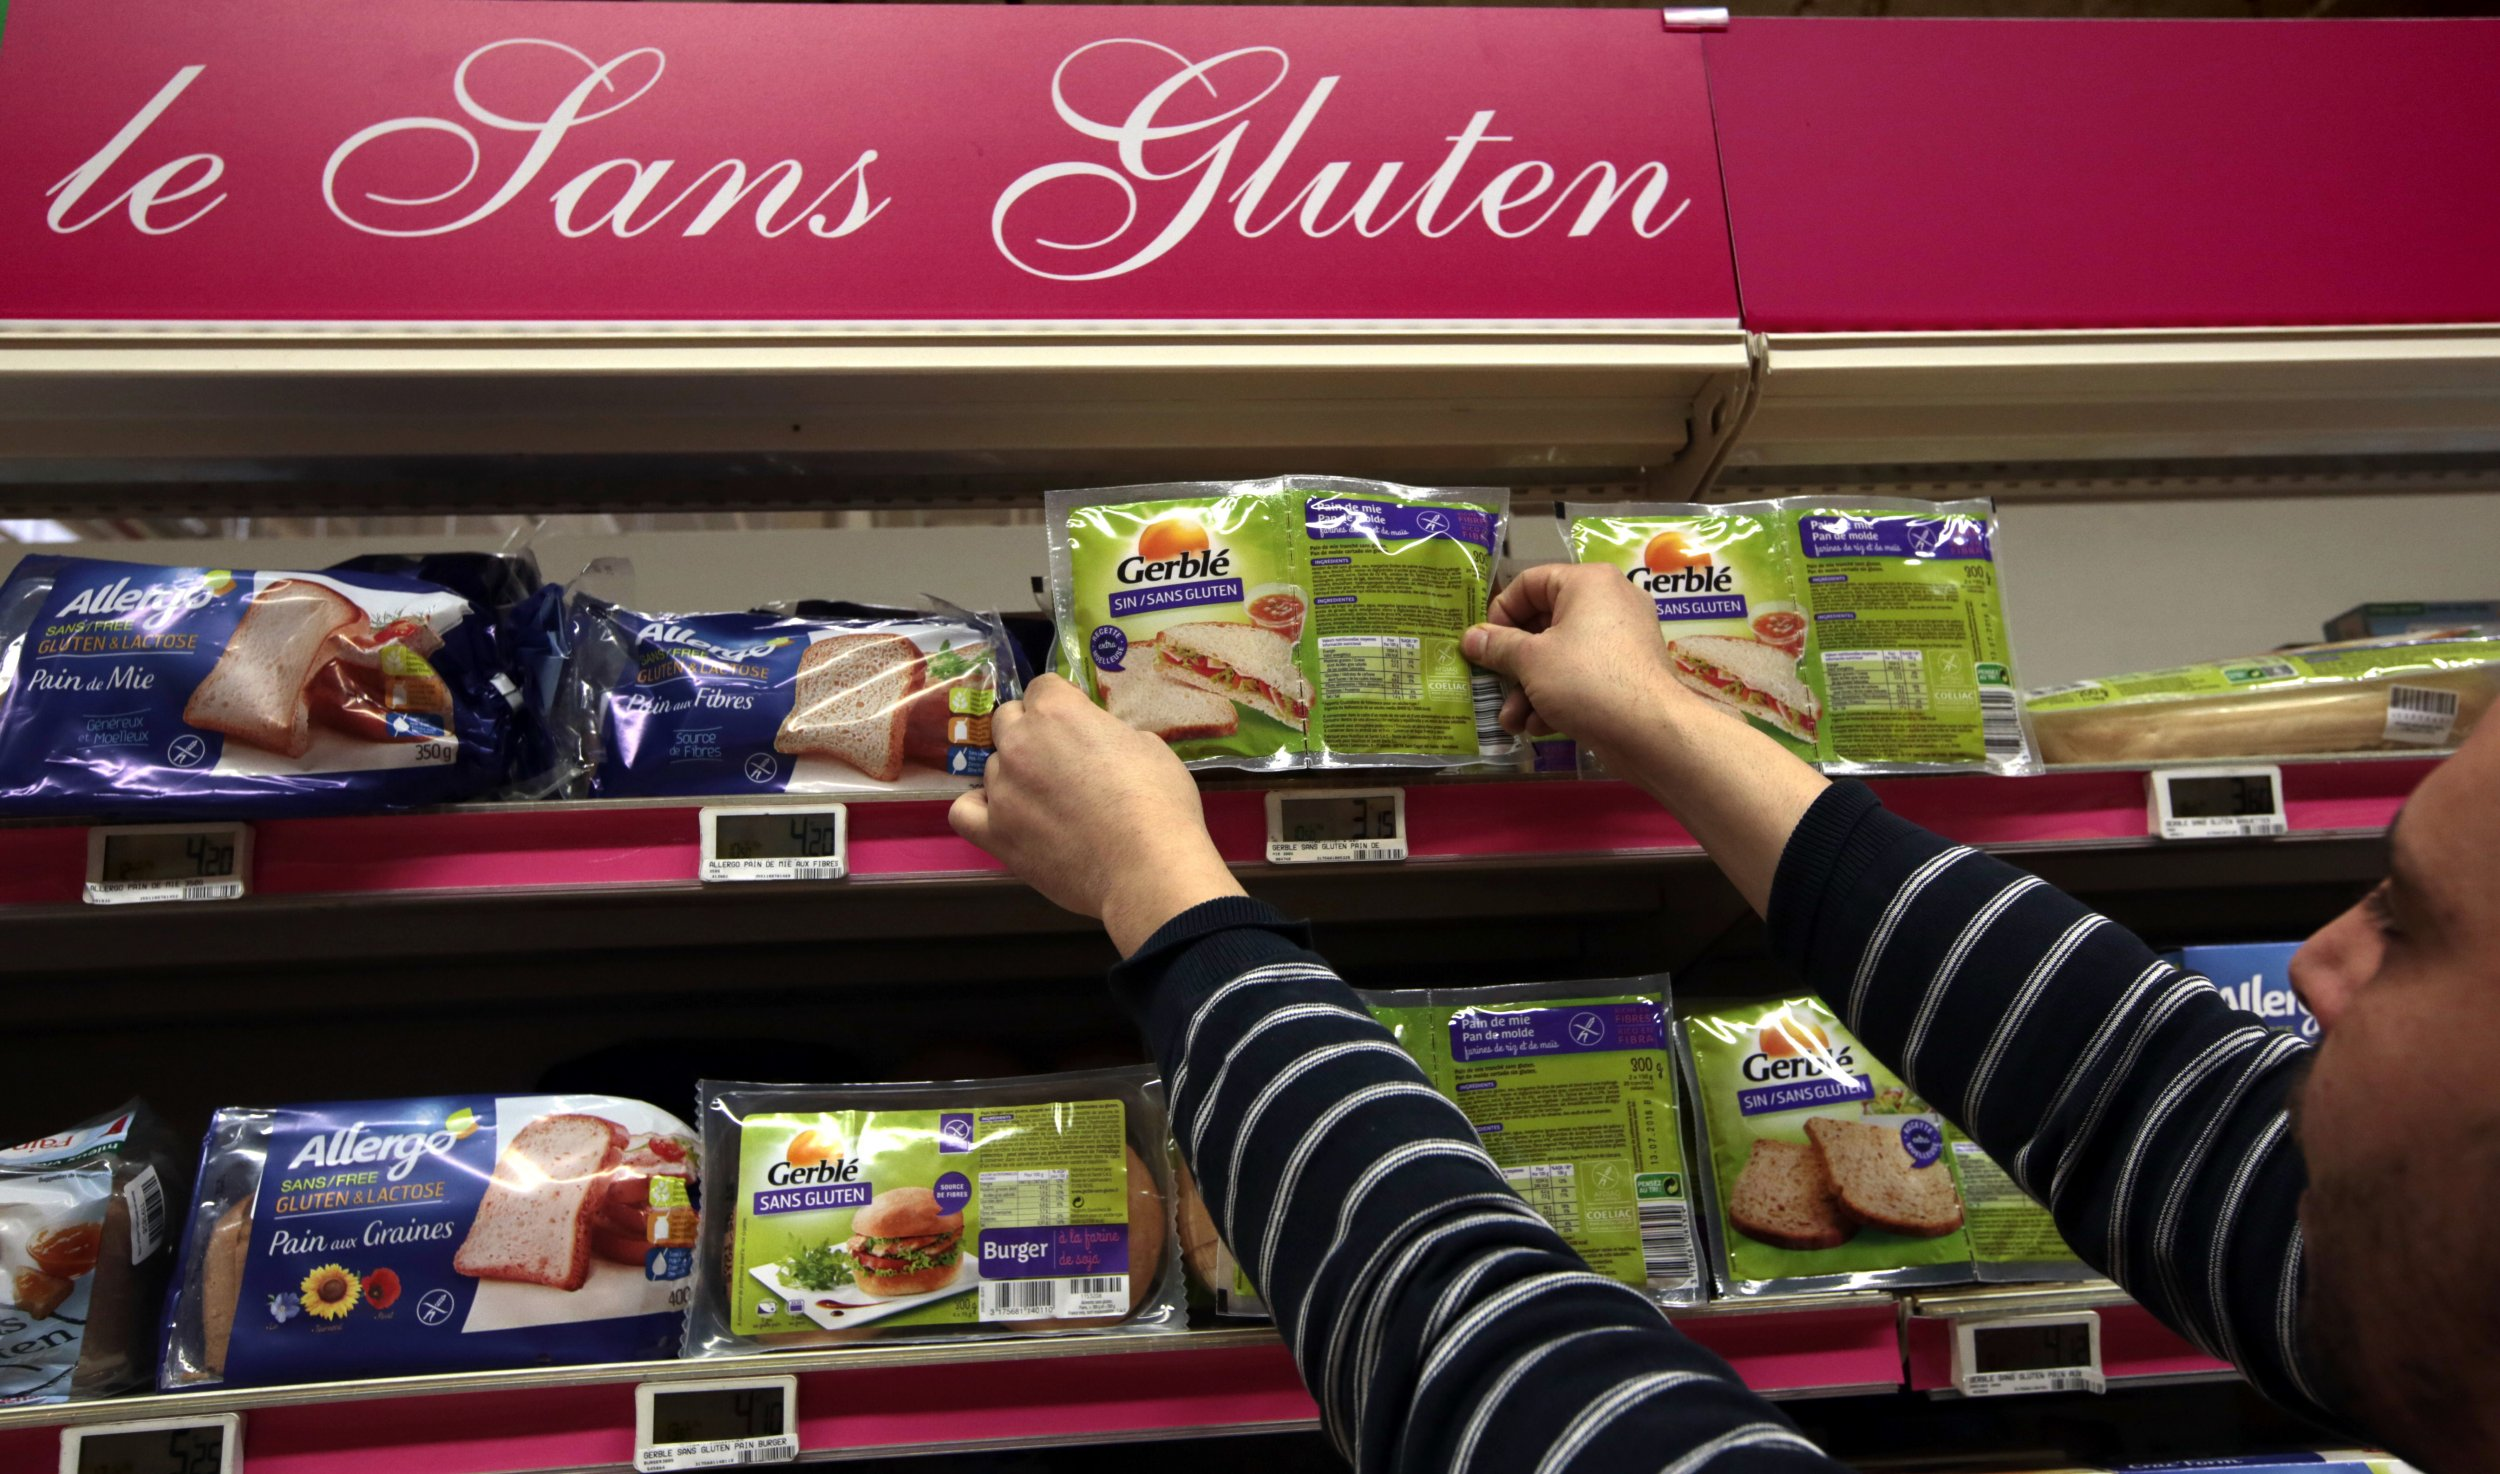 Gluten May Not Be to Blame for Wheat Sensitivities, Research Shows